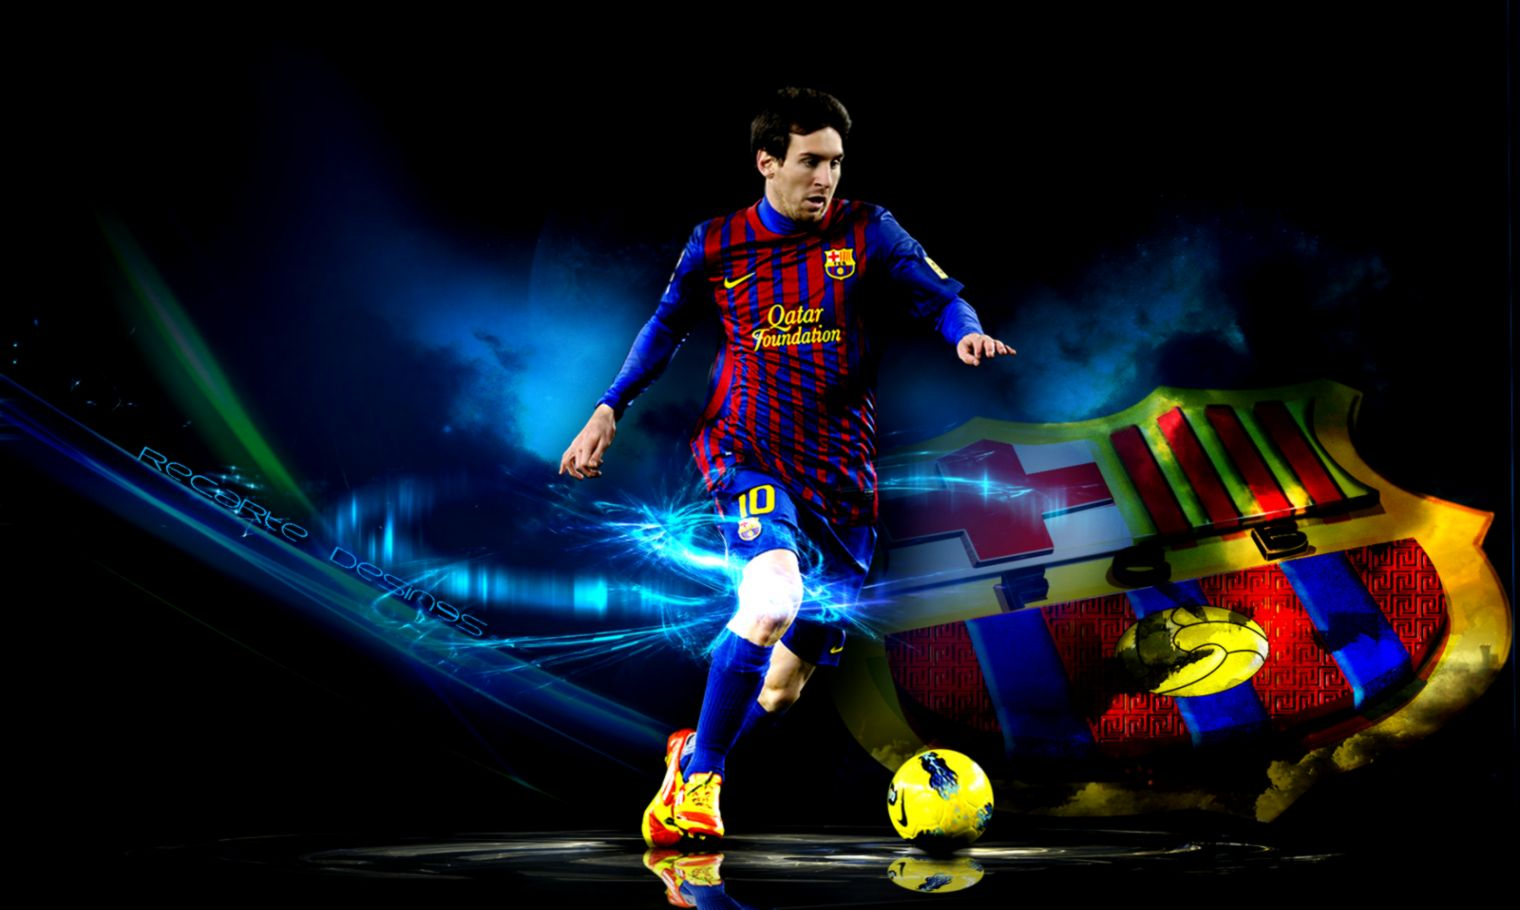 Lionel Messi Hd Wallpaper Glowing | This Wallpapers